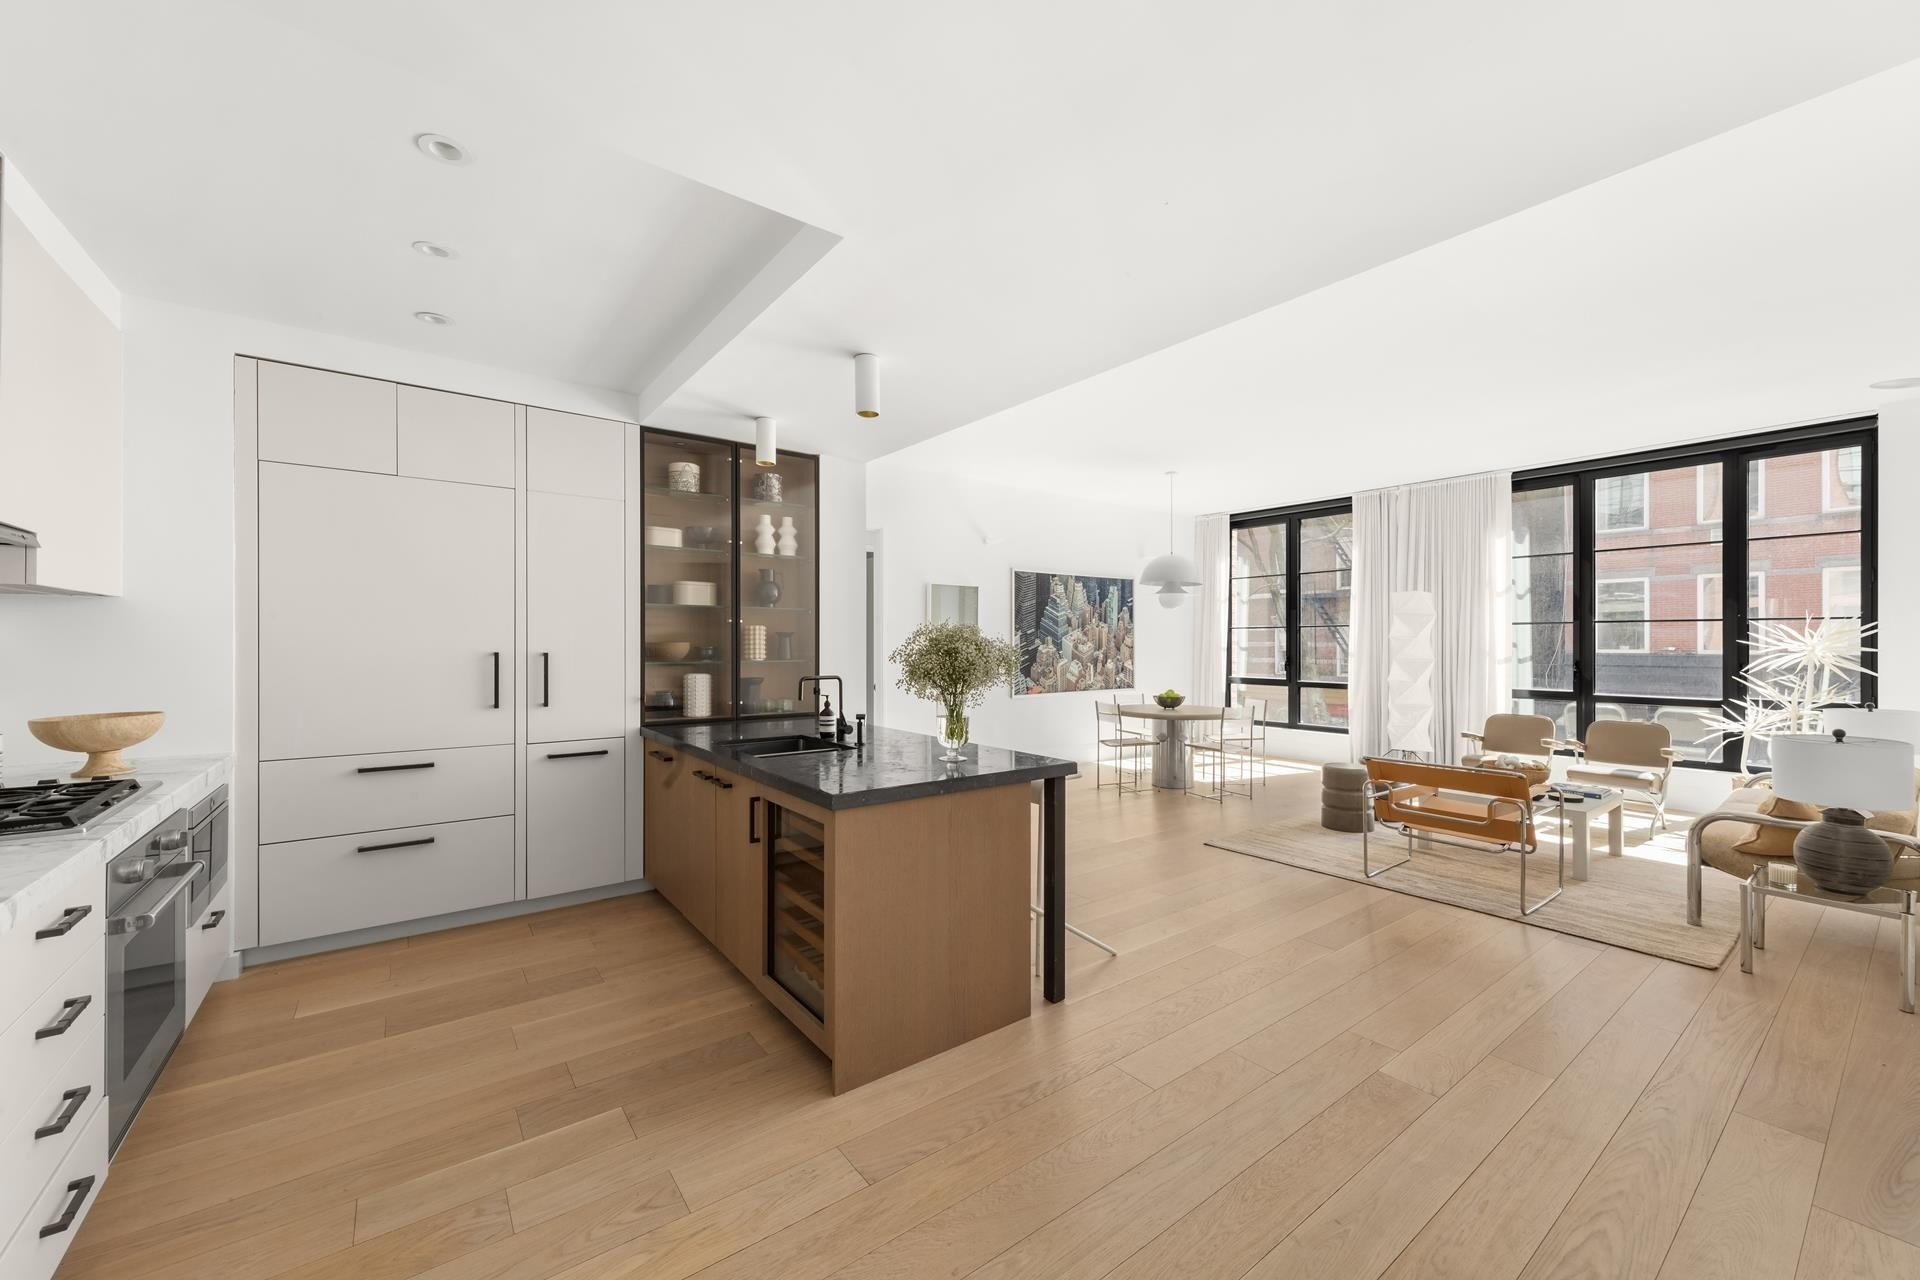 5. Condominiums for Sale at Steiner East Village, 438 E 12TH ST , 3Q East Village, New York, NY 10009